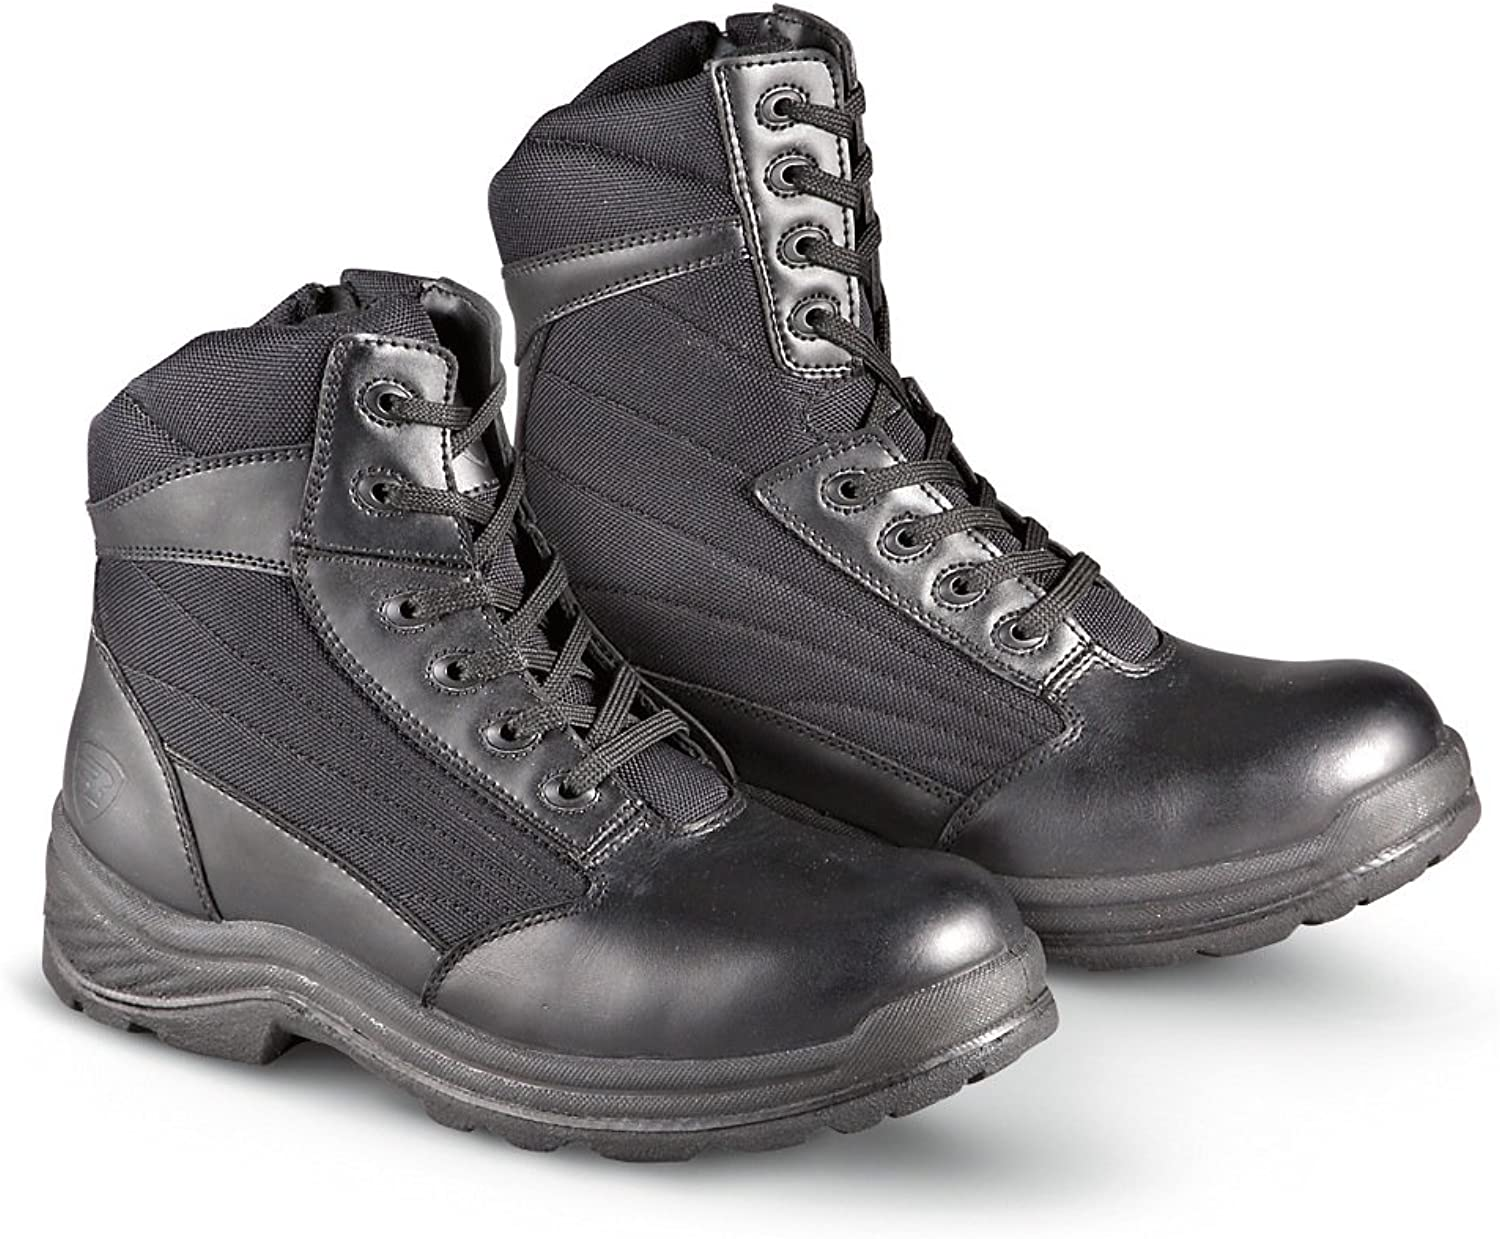 Men's 8  The Shield by Rucks Tactical Side - zip Boots Black, BLACK, 13M